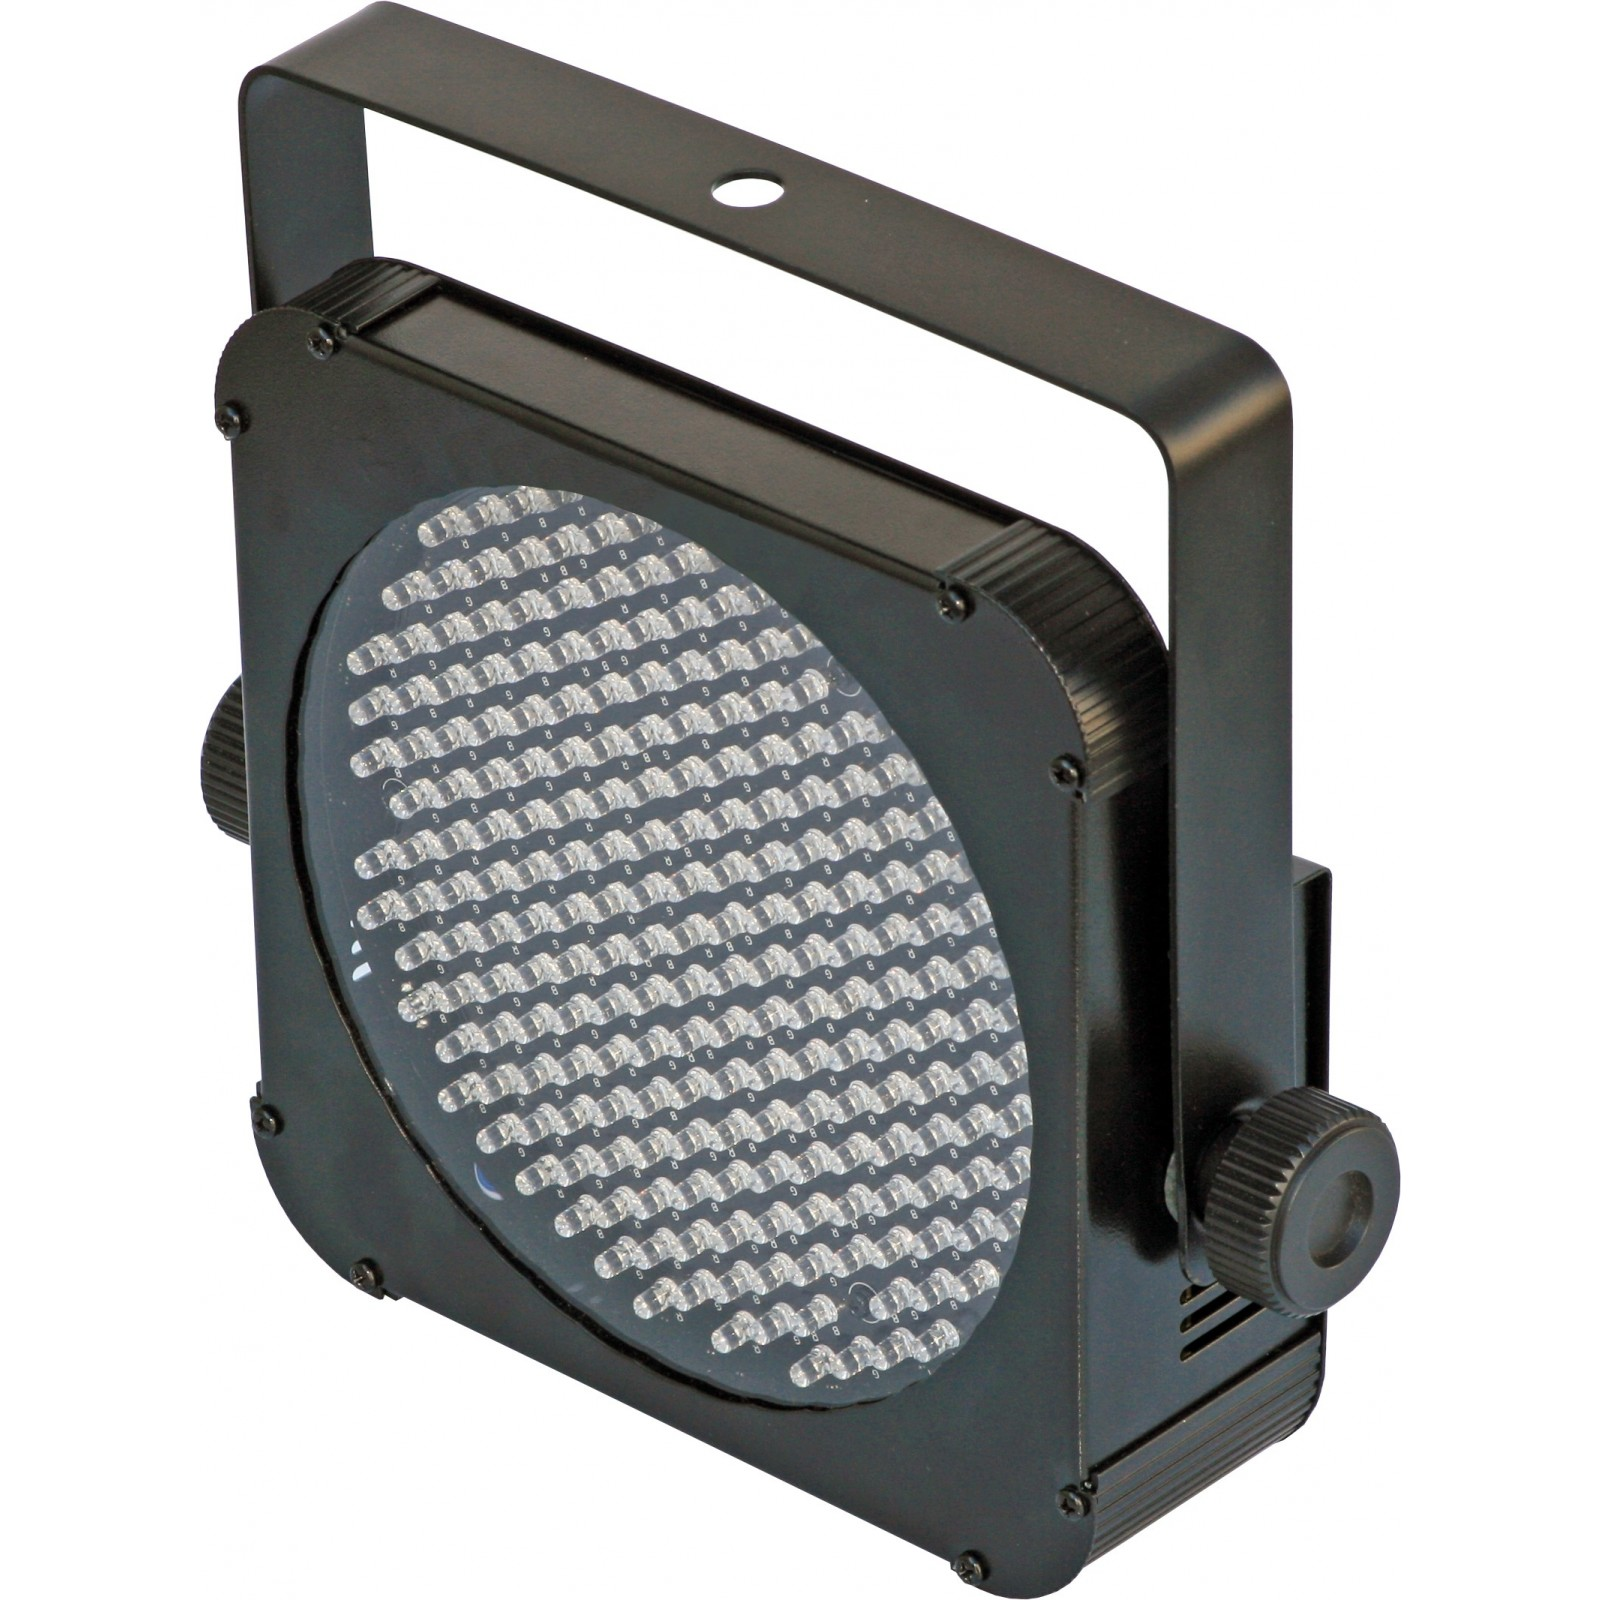 Spot Exterieur Faisceau Jb Systems - Plano Spot - Stage Lighting Projectors